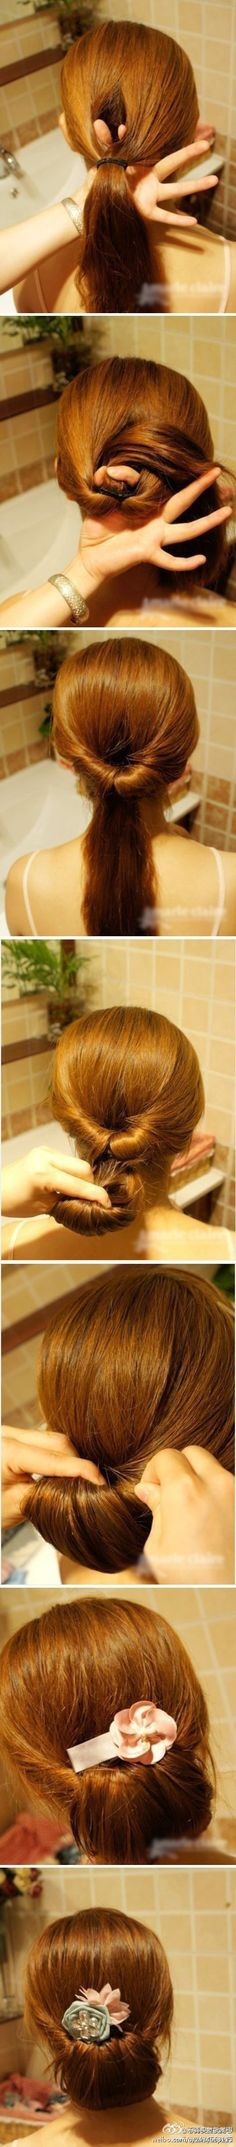 Remember to keep your hair out of your face. Here's a quick and easy tutorial on putting your hair up in a bun!